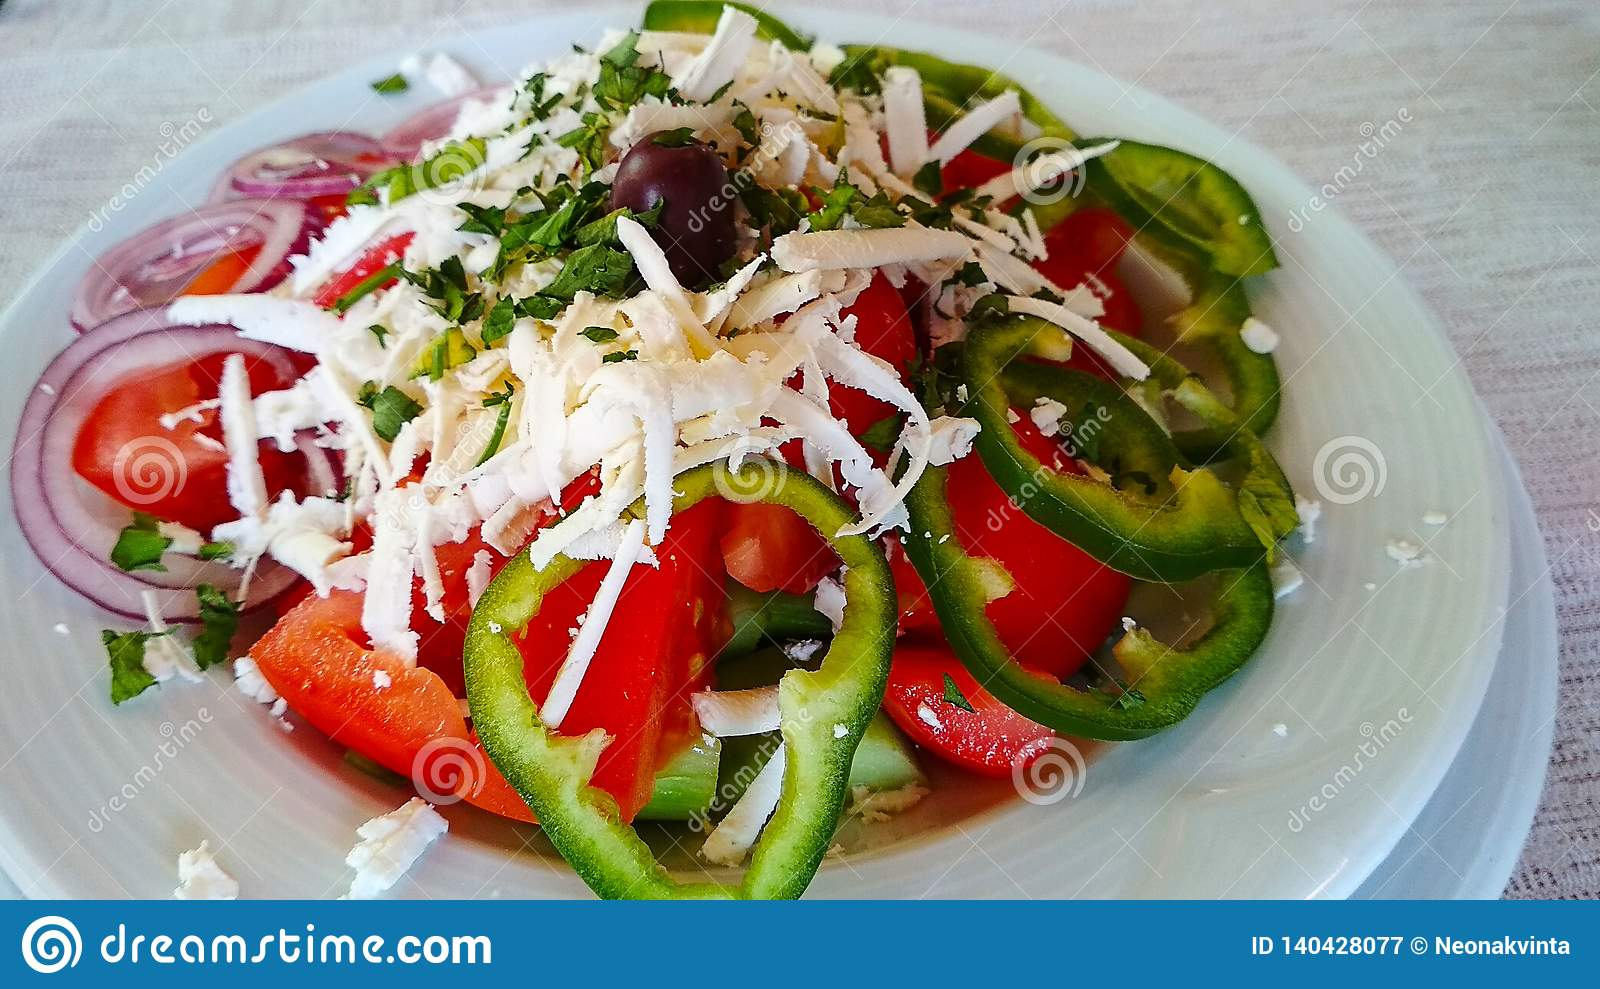 Salad in a white plate with onion, olives and grated cheese